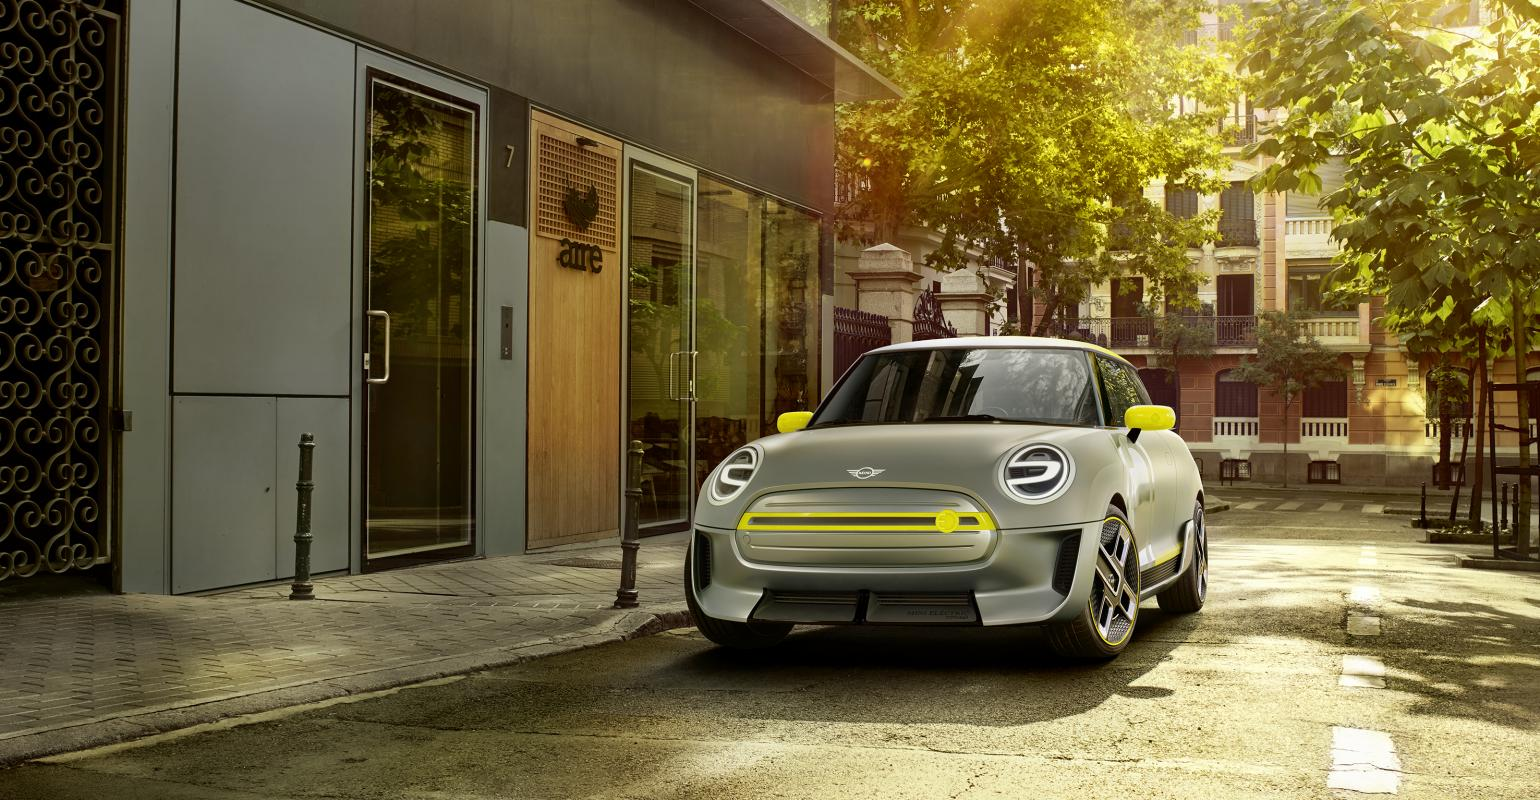 Mini Bmw S Electric Vehicle Technology Migrates To Mini Concept